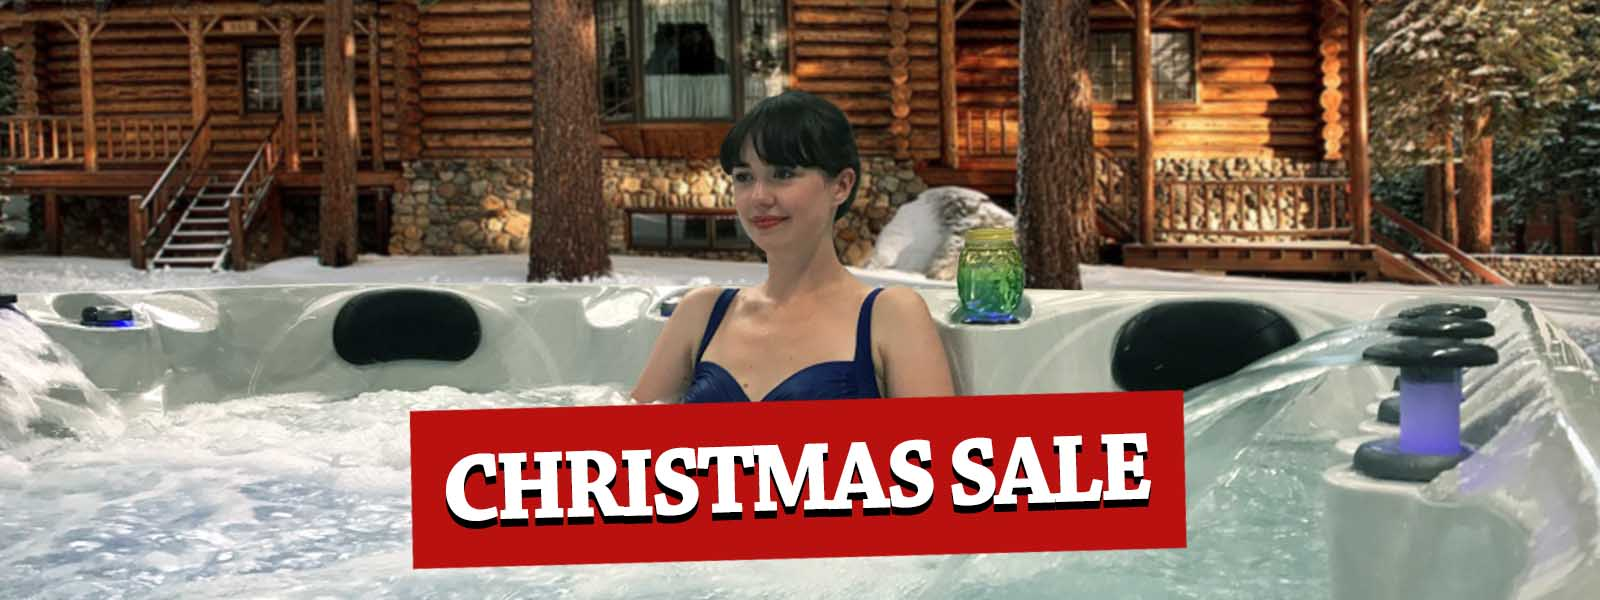 Christmas Online Sale For American Luxury Hot Tubs | All American Spa